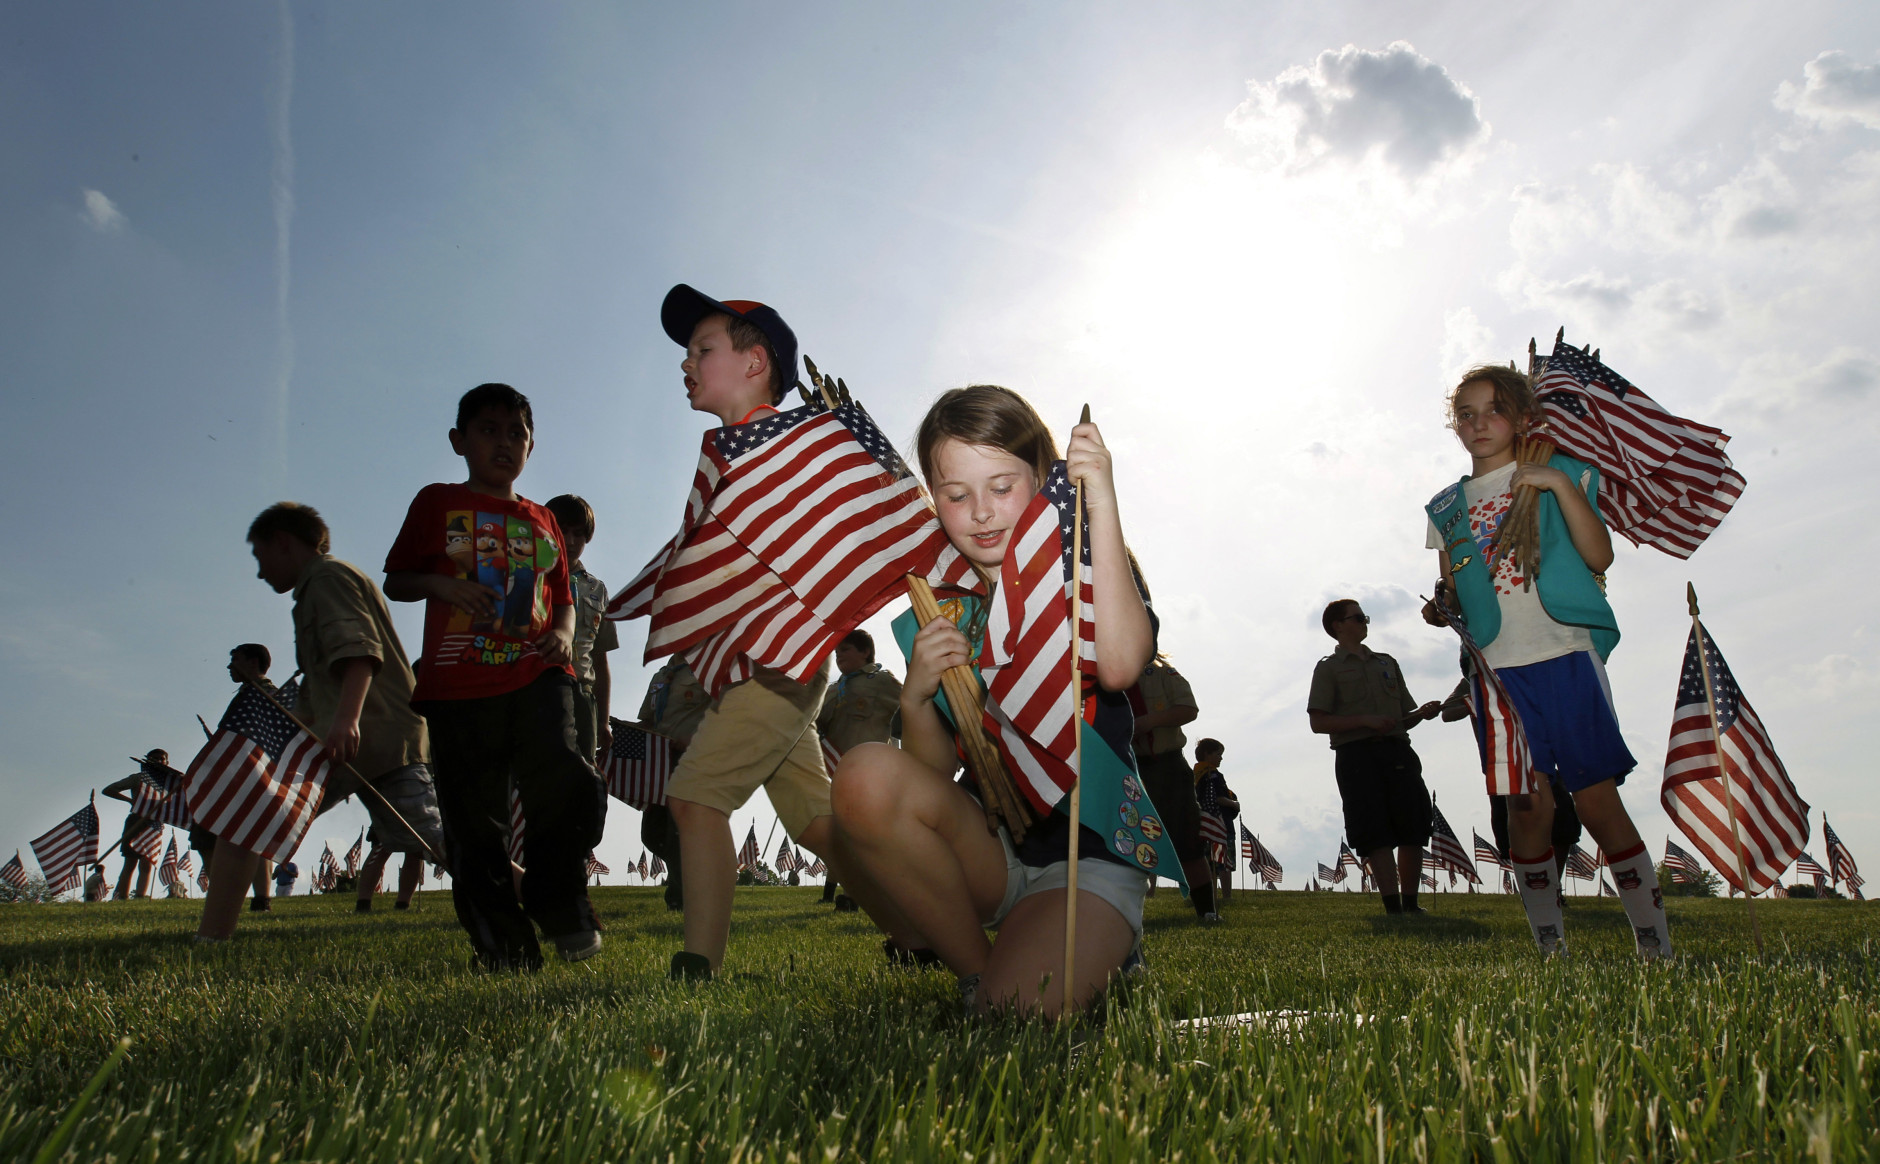 Throngs of scouts rush to place thousands of flags on veteran's graves at Brig. Gen. William C. Doyle Veterans Memorial Cemetery in honor of Memorial Day, Friday, May 27, 2016, in Wrightstown N.J. (AP Photo/Mel Evans)